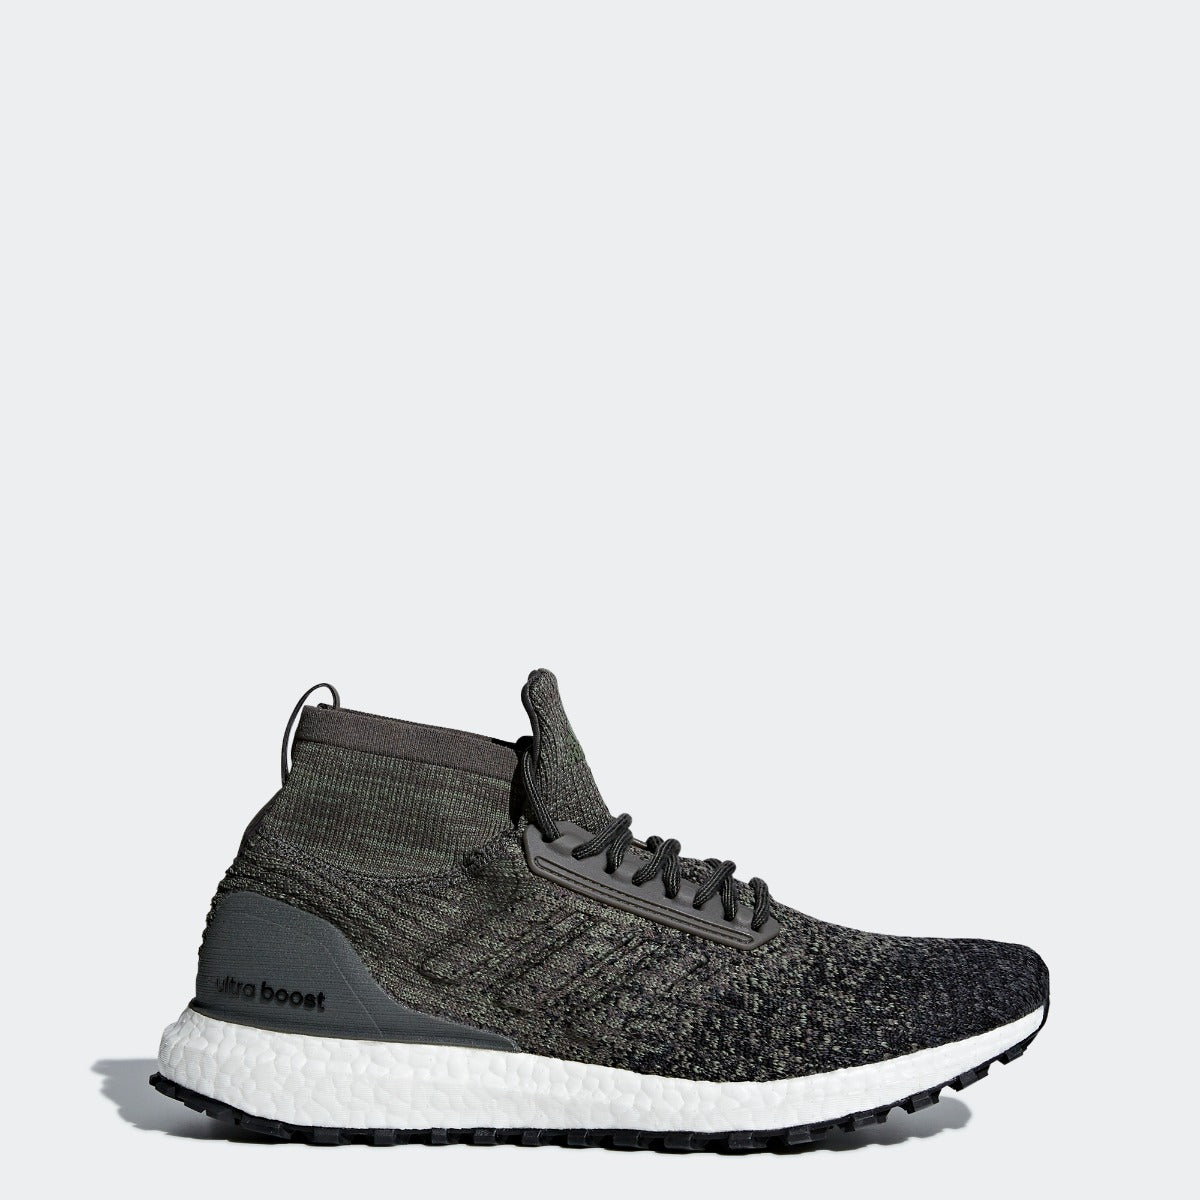 7f05390a6 Men s adidas Running Ultraboost All Terrain Shoes Trace Cargo Base Green